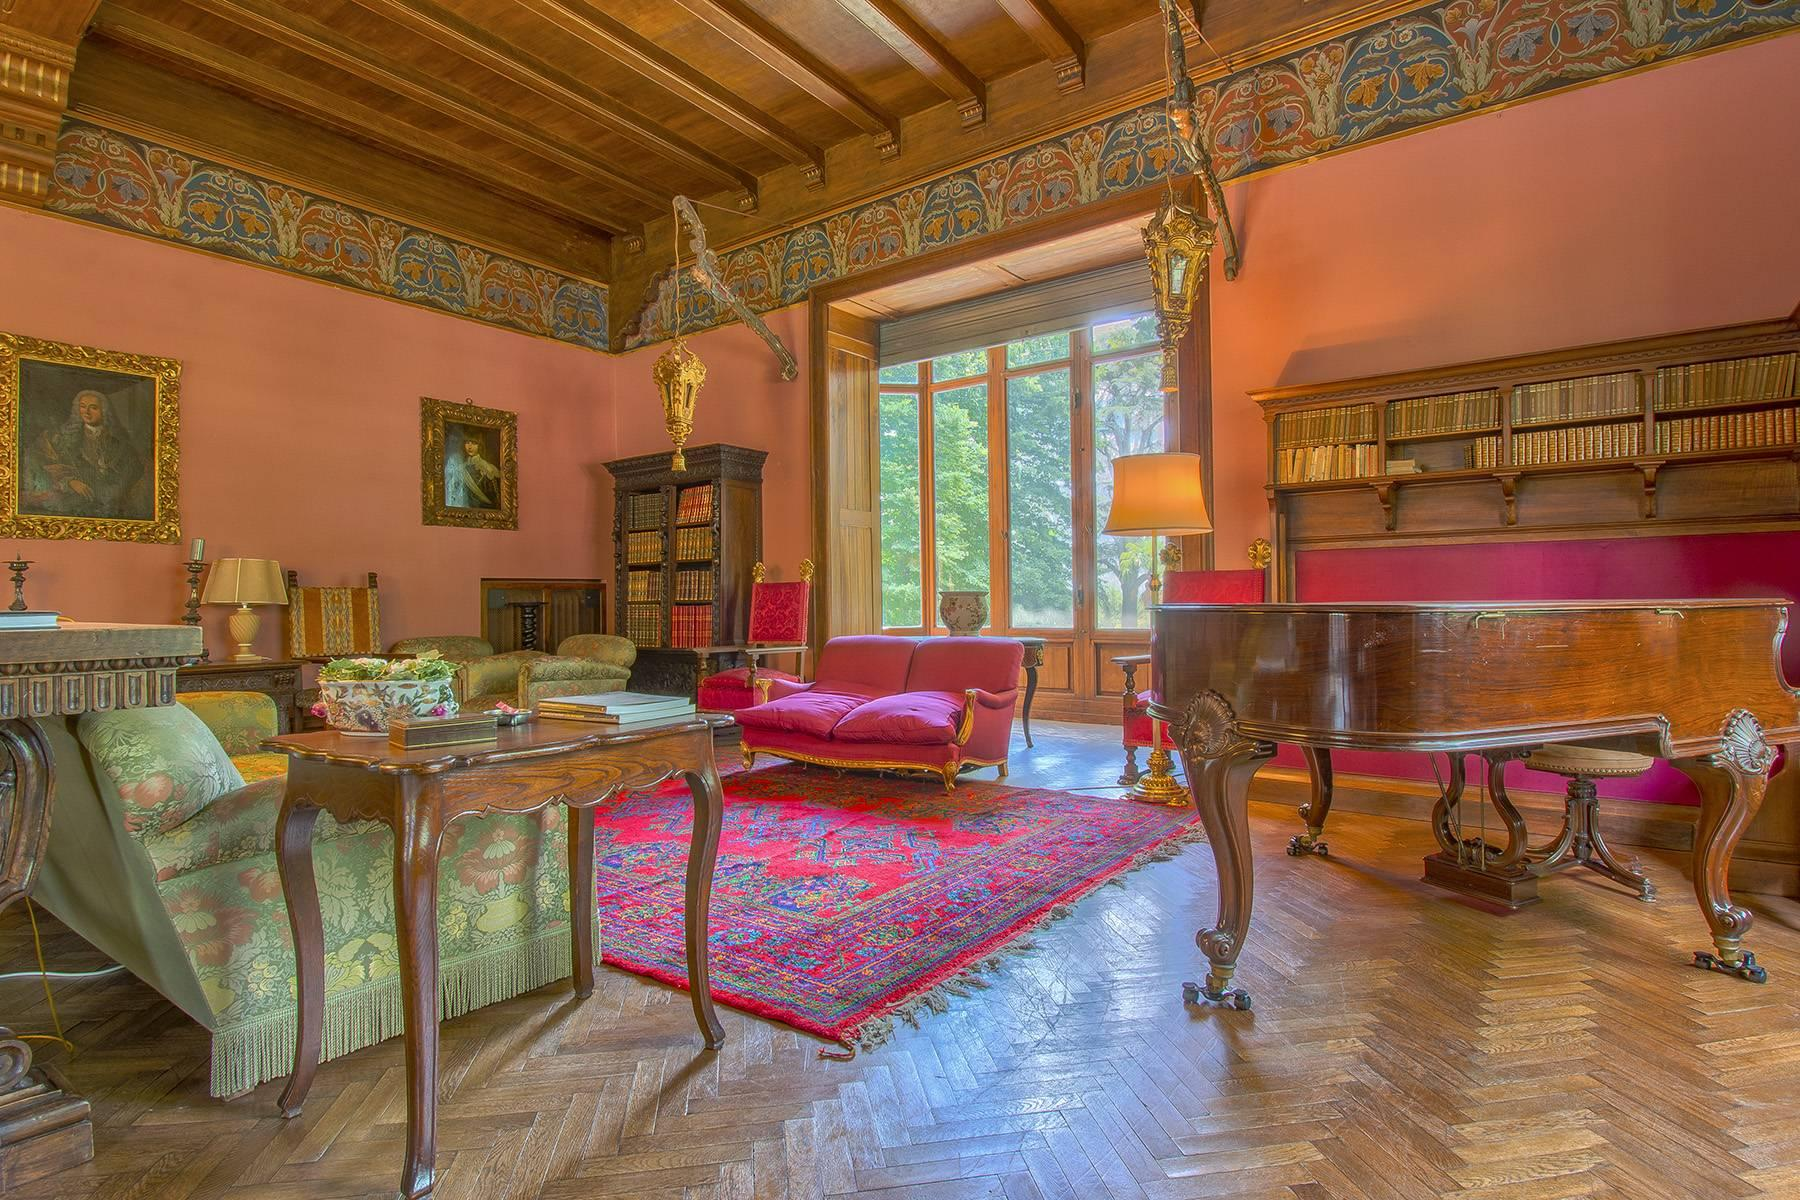 Magnificent villa dating back to the 19th century - 8